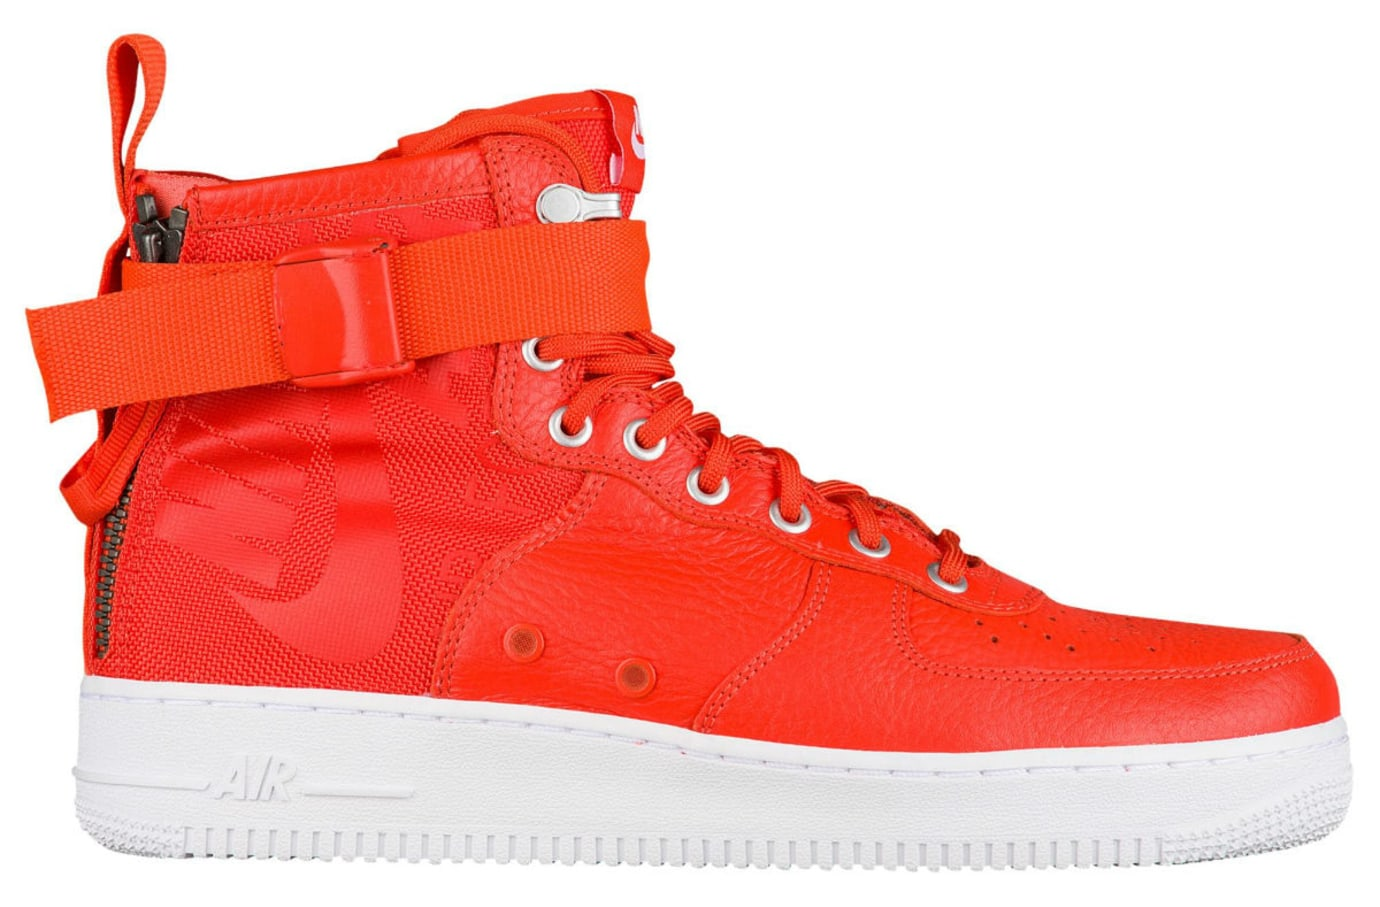 Nike SF Air Force 1 Mid Team Orange Release Date Profile 917753-800